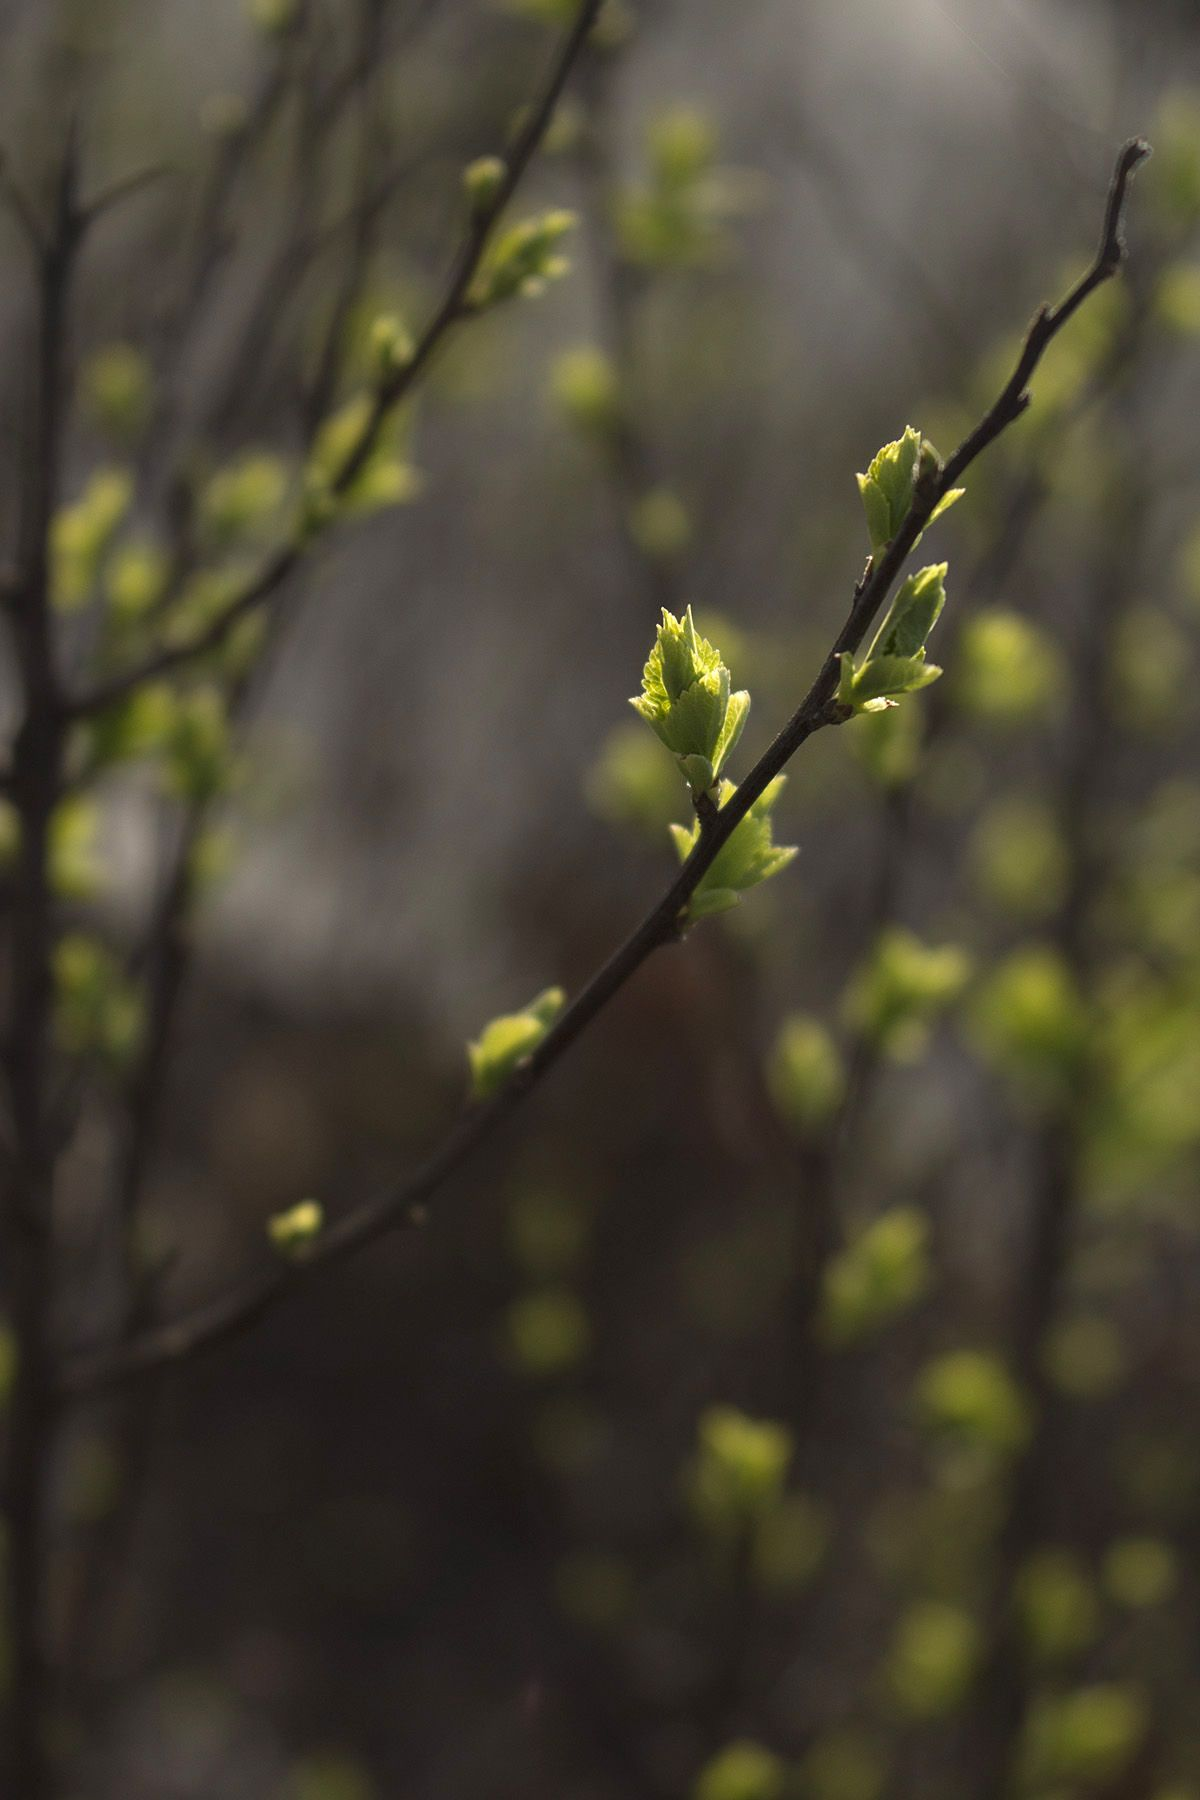 Spring 🌿 #photo #photography #spring #sprout #nature #canon #bud ...